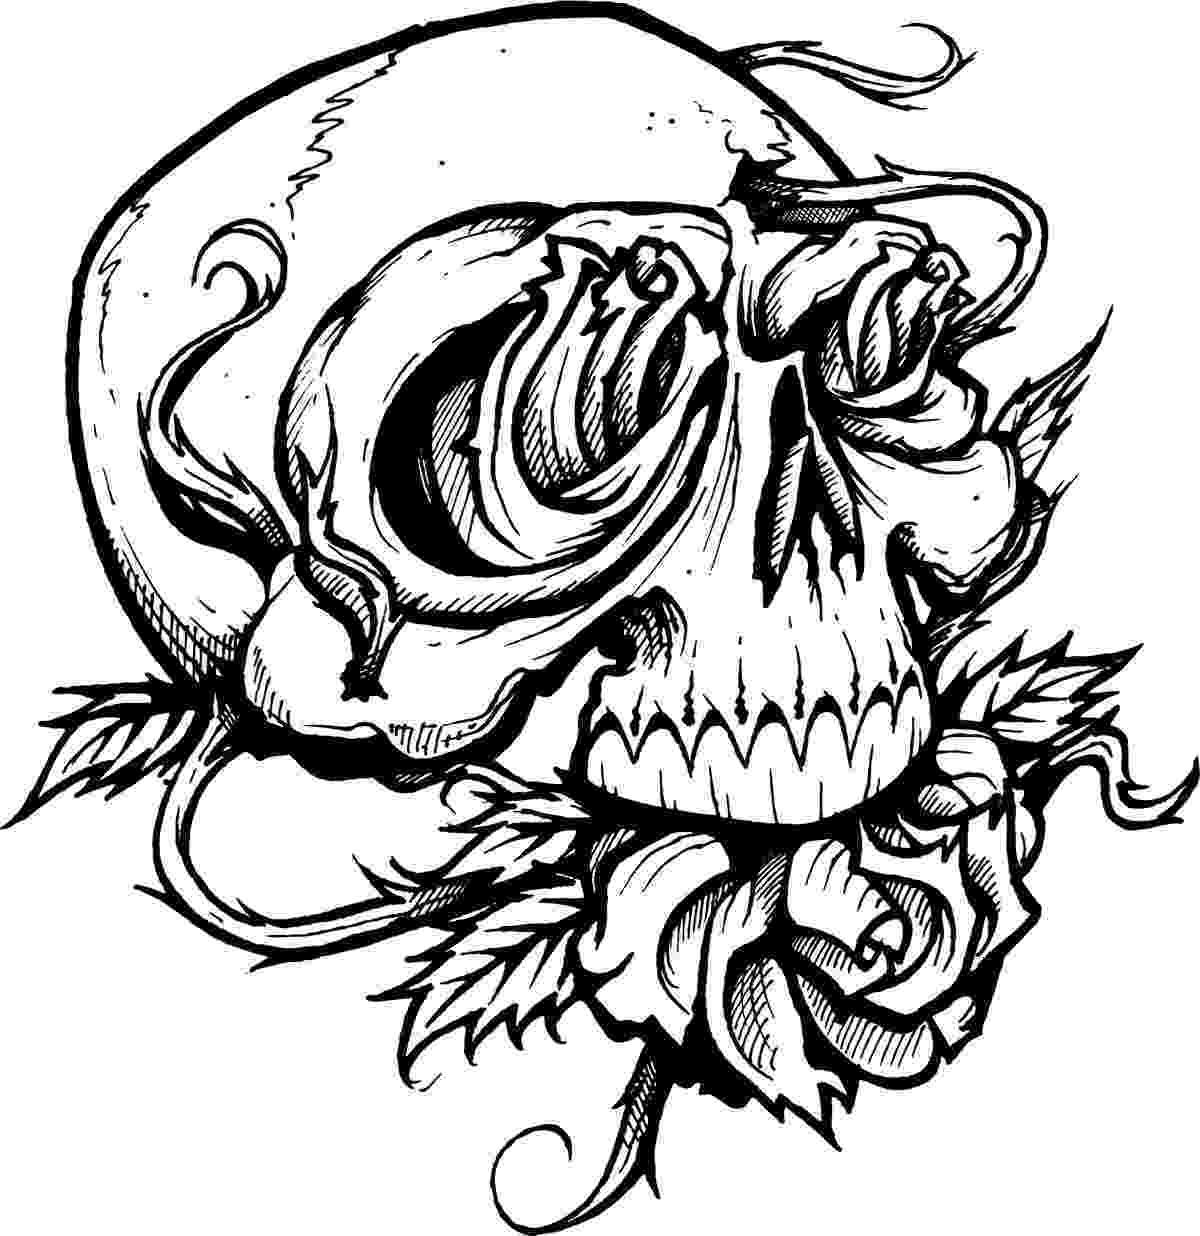 colouring online suggestions design coloring pages free download on clipartmag colouring online suggestions